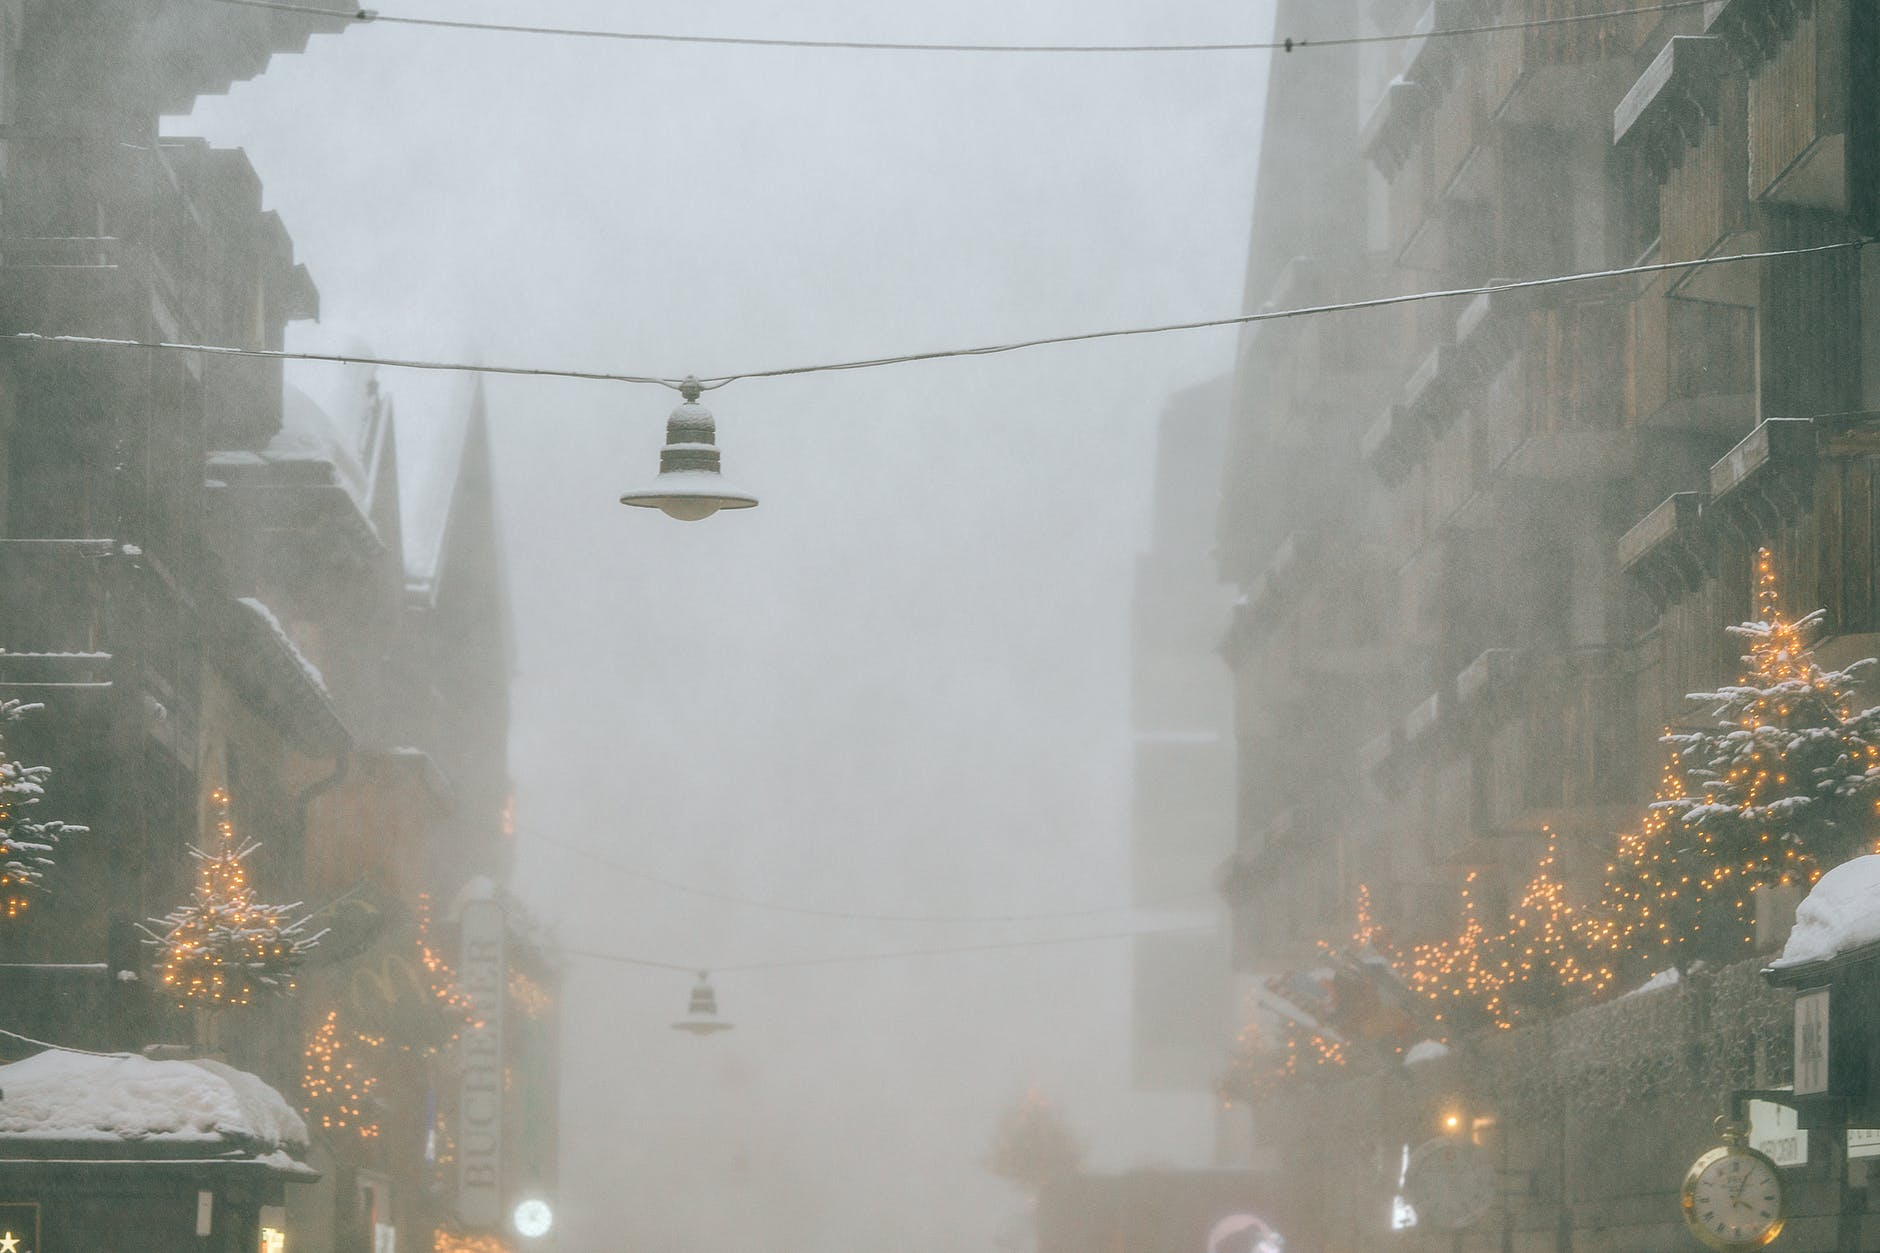 frozen city street with hanging streetlights on foggy winter day